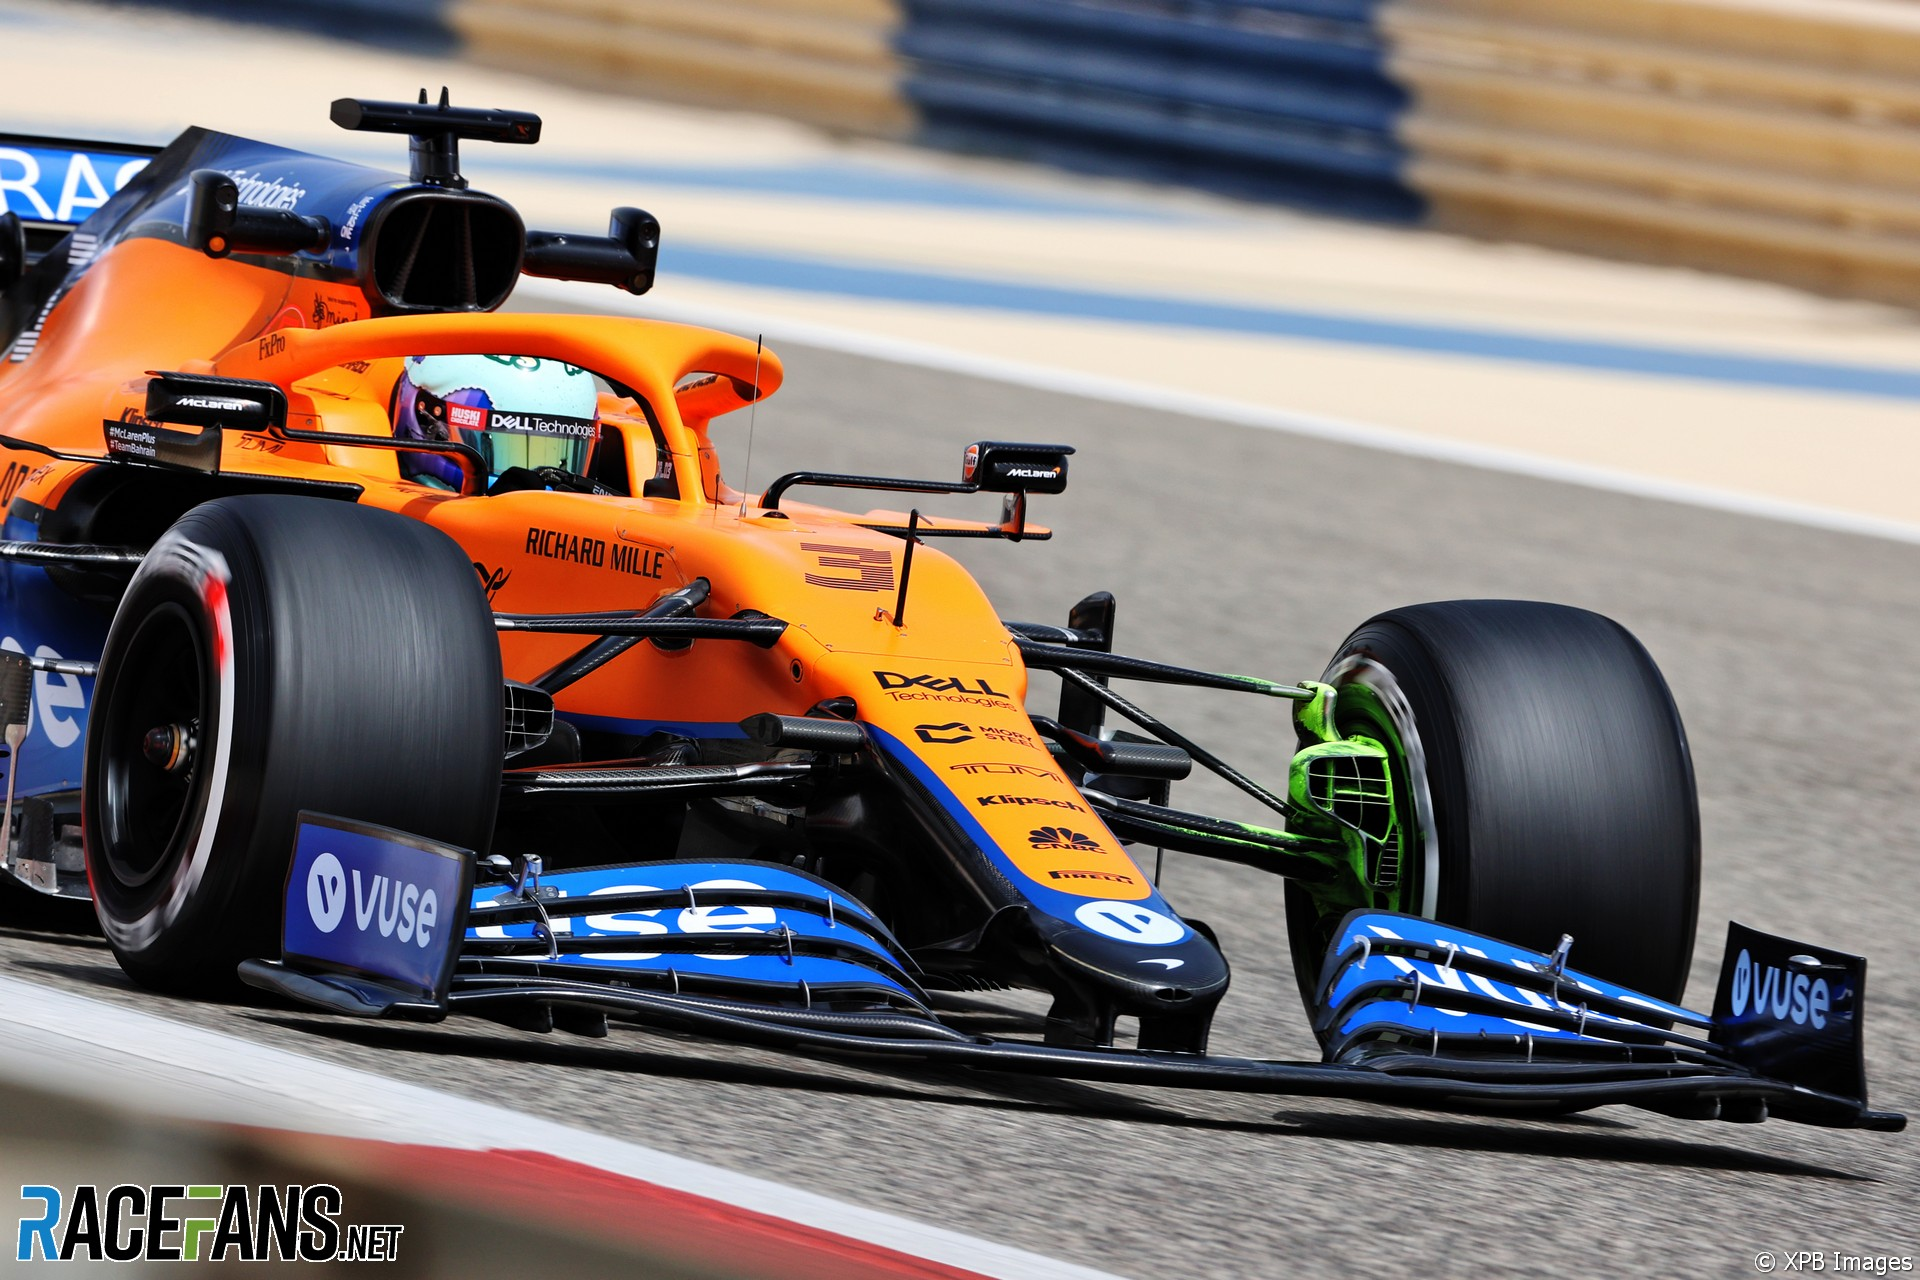 Daniel Ricciardo, McLaren, Bahrain International Circuit, 2021